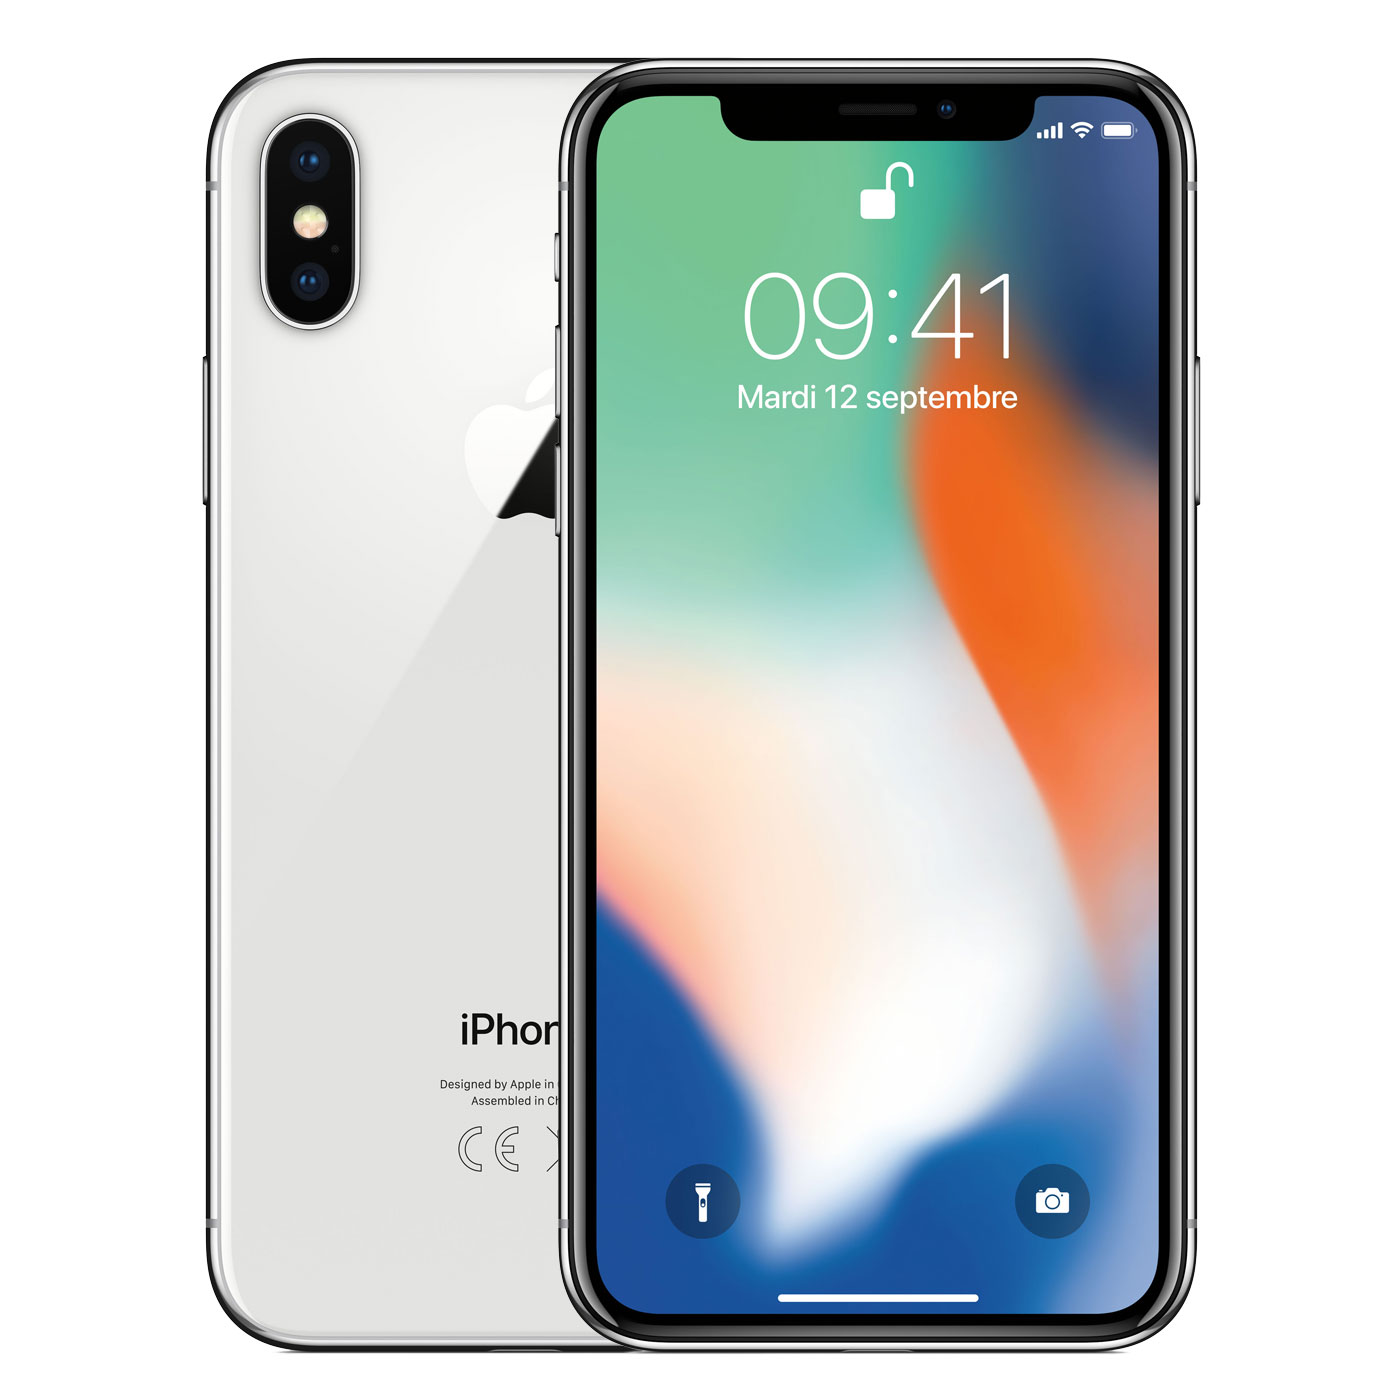 "Mobile & smartphone Apple iPhone X 256 Go Argent Smartphone 4G-LTE Advanced IP67 - Apple A11 Bionic Hexa-Core - RAM 3 Go - Ecran Super Retina 5.8"" 1125 x 2436 - 256 Go - NFC/Bluetooth 5.0 - iOS 11"